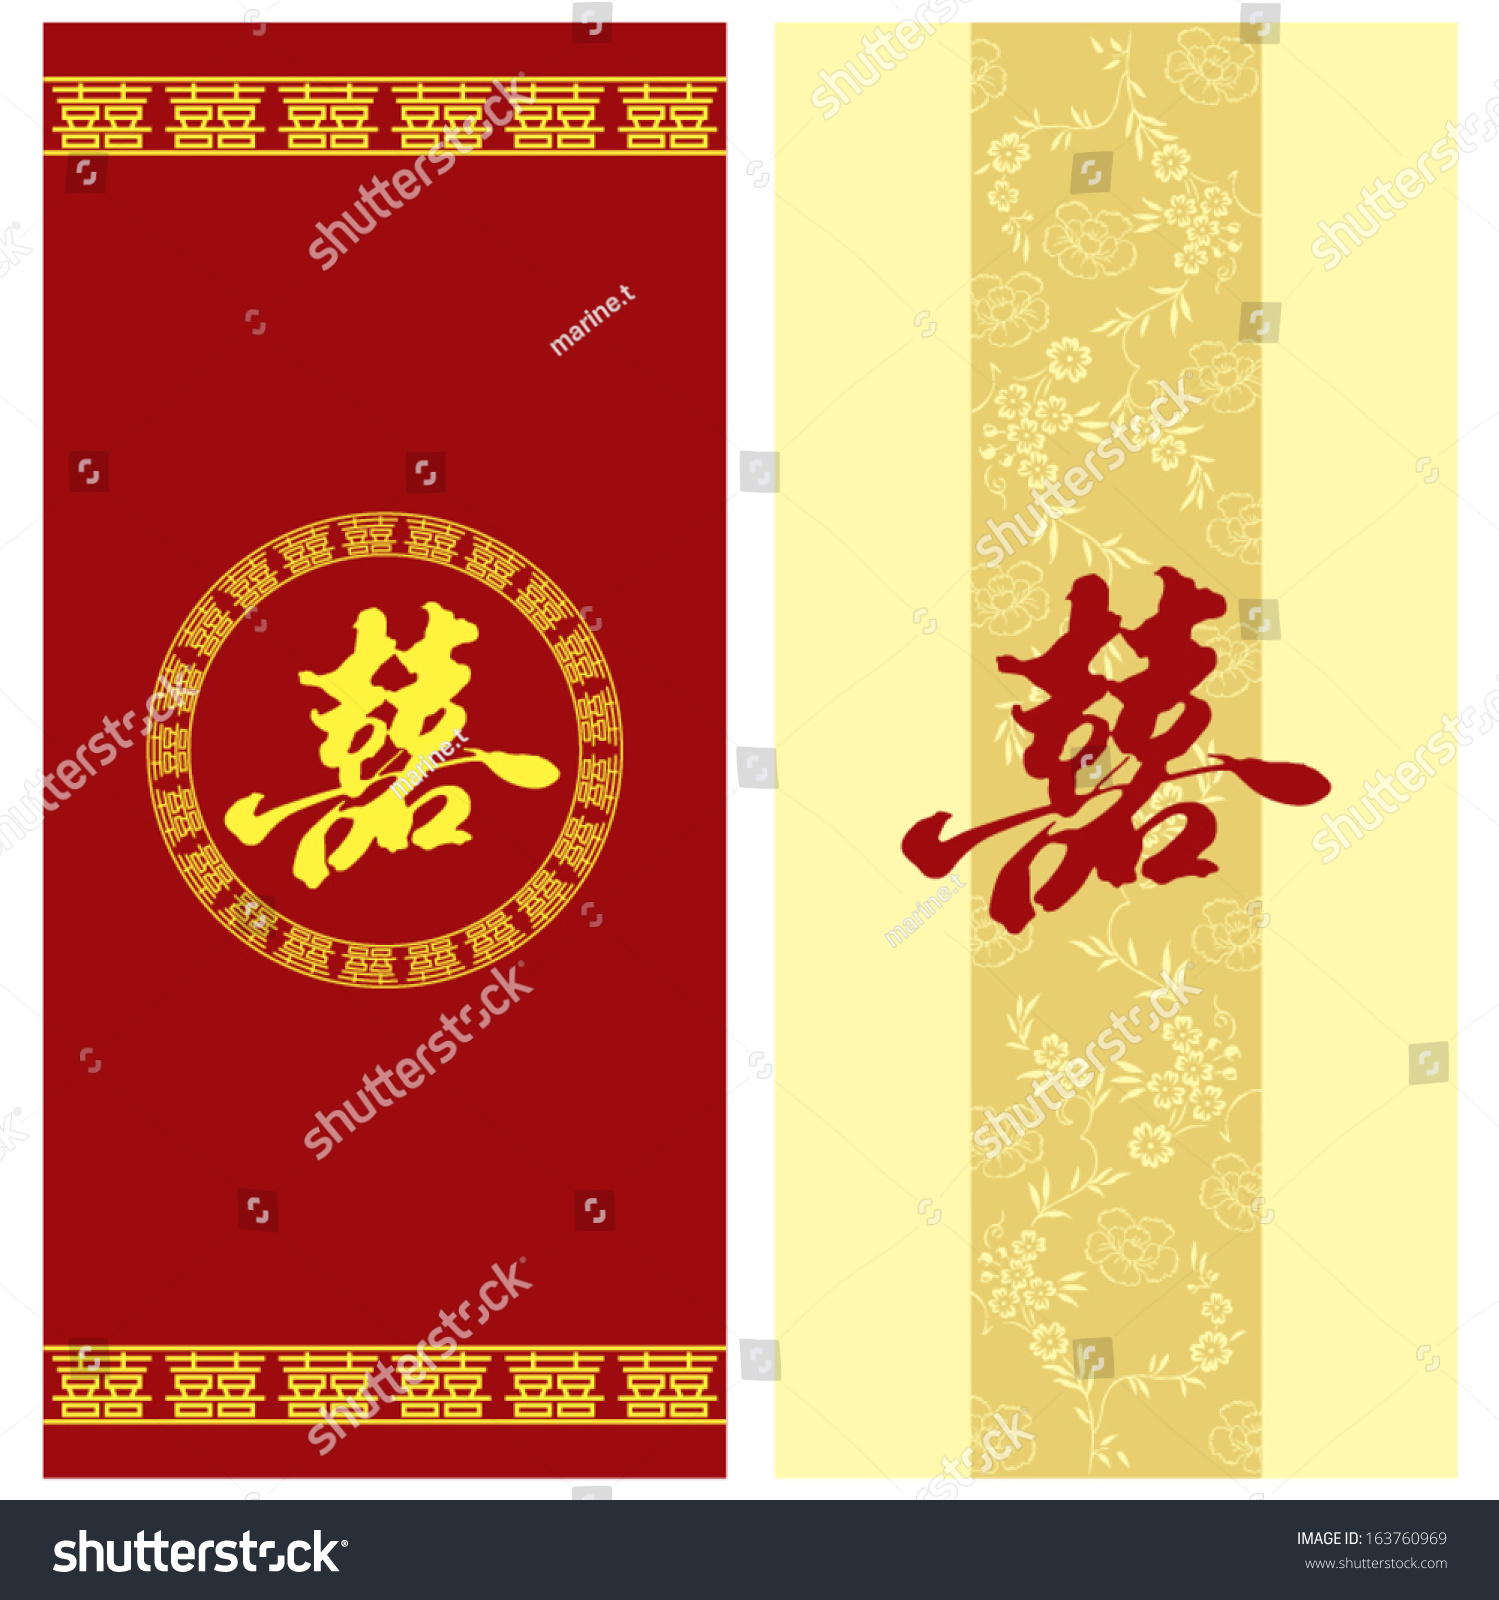 Traditional Chinese Wedding Invitation Card Translation – Chinese Wedding Invitation Cards